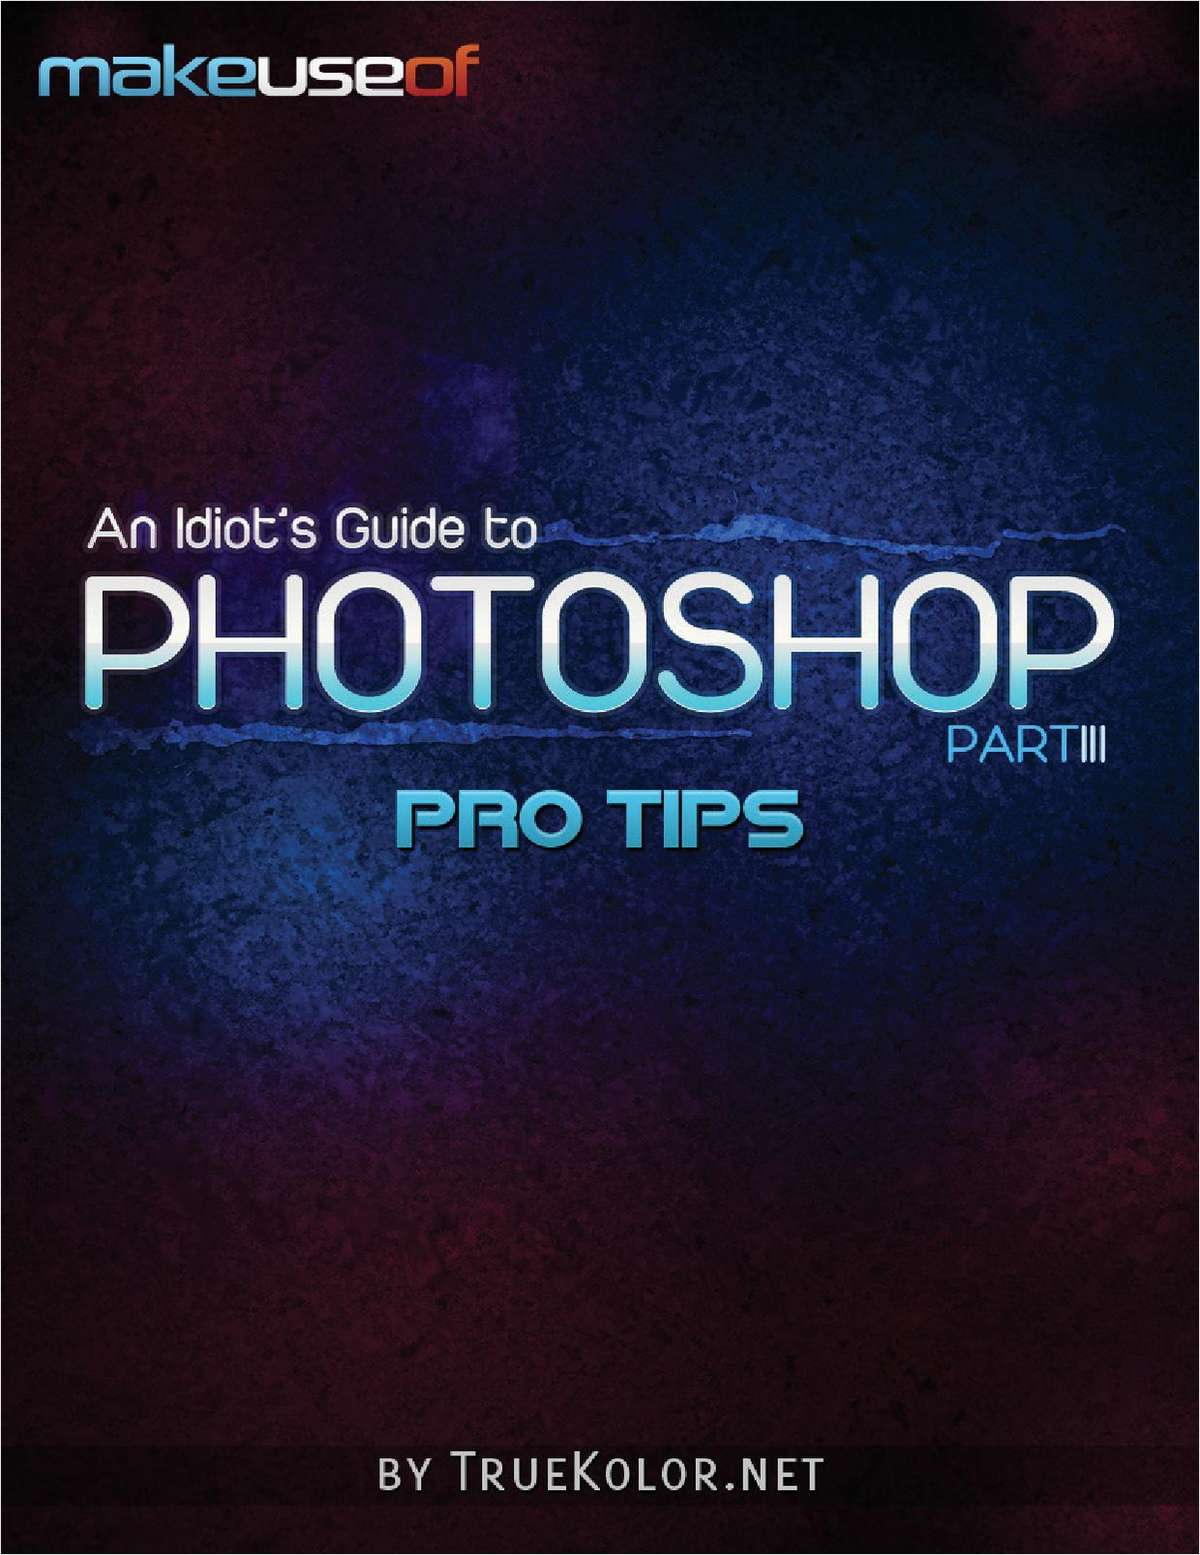 An Idiots Guide to Photoshop: Part 3 - Pro Tips